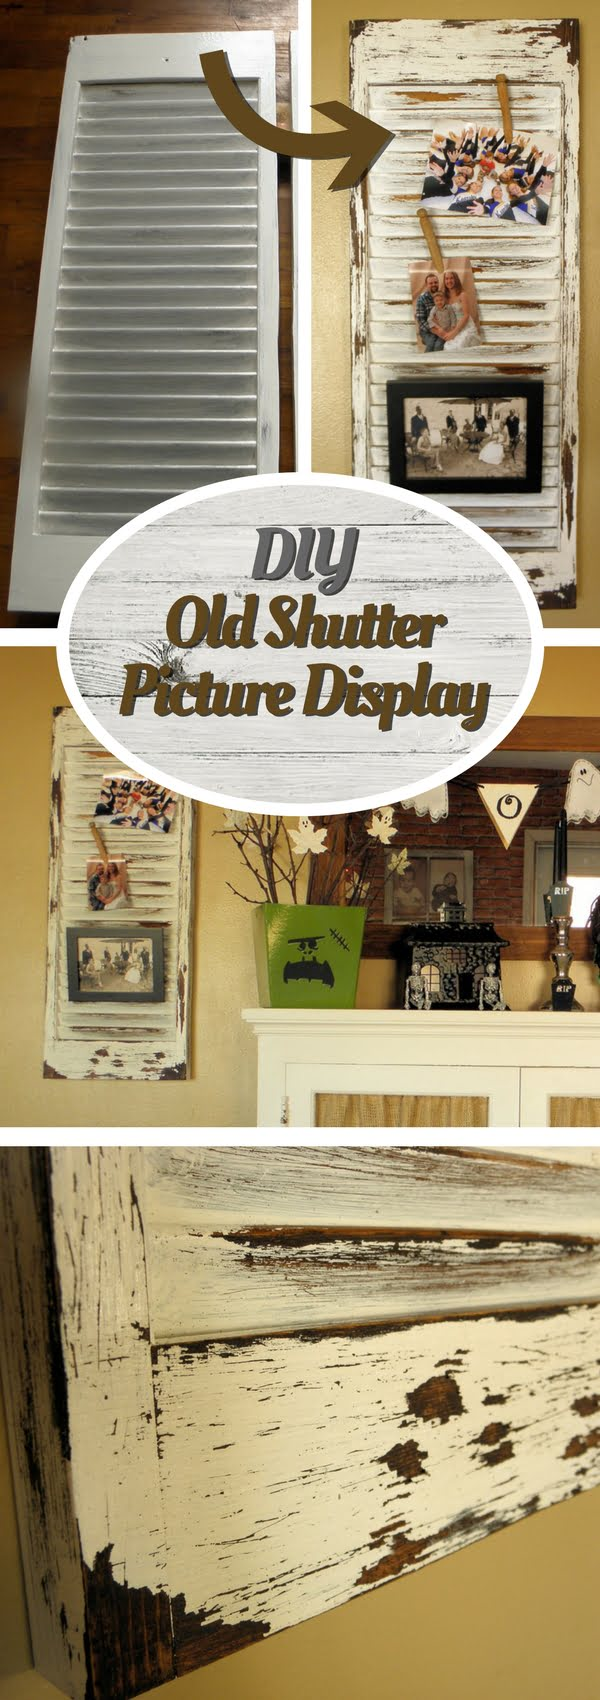 How to make your own DIY shutters for picture display